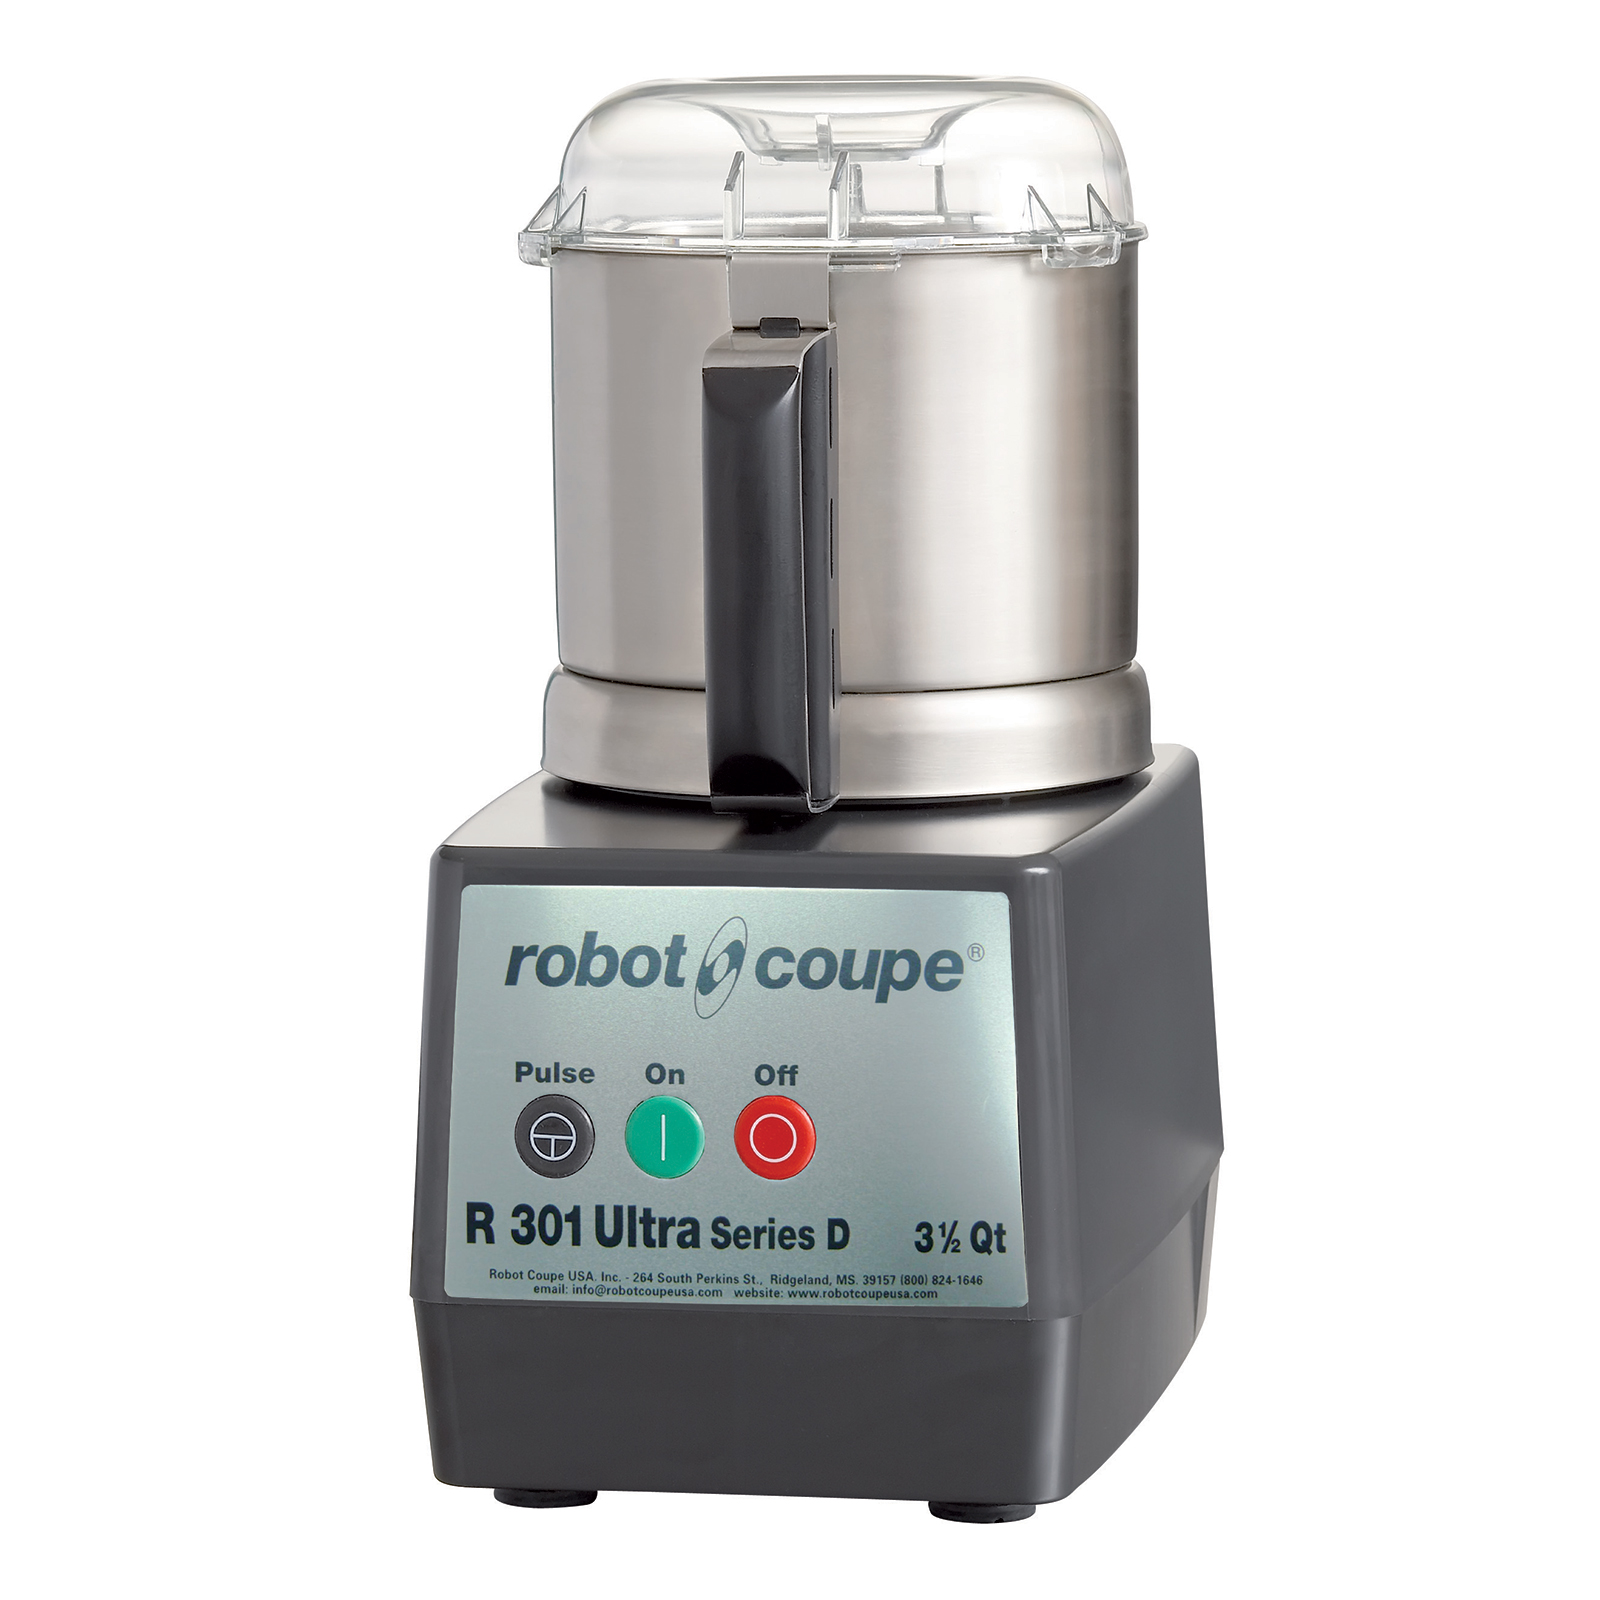 Robot Coupe R301 ULTRA B food processor, benchtop / countertop